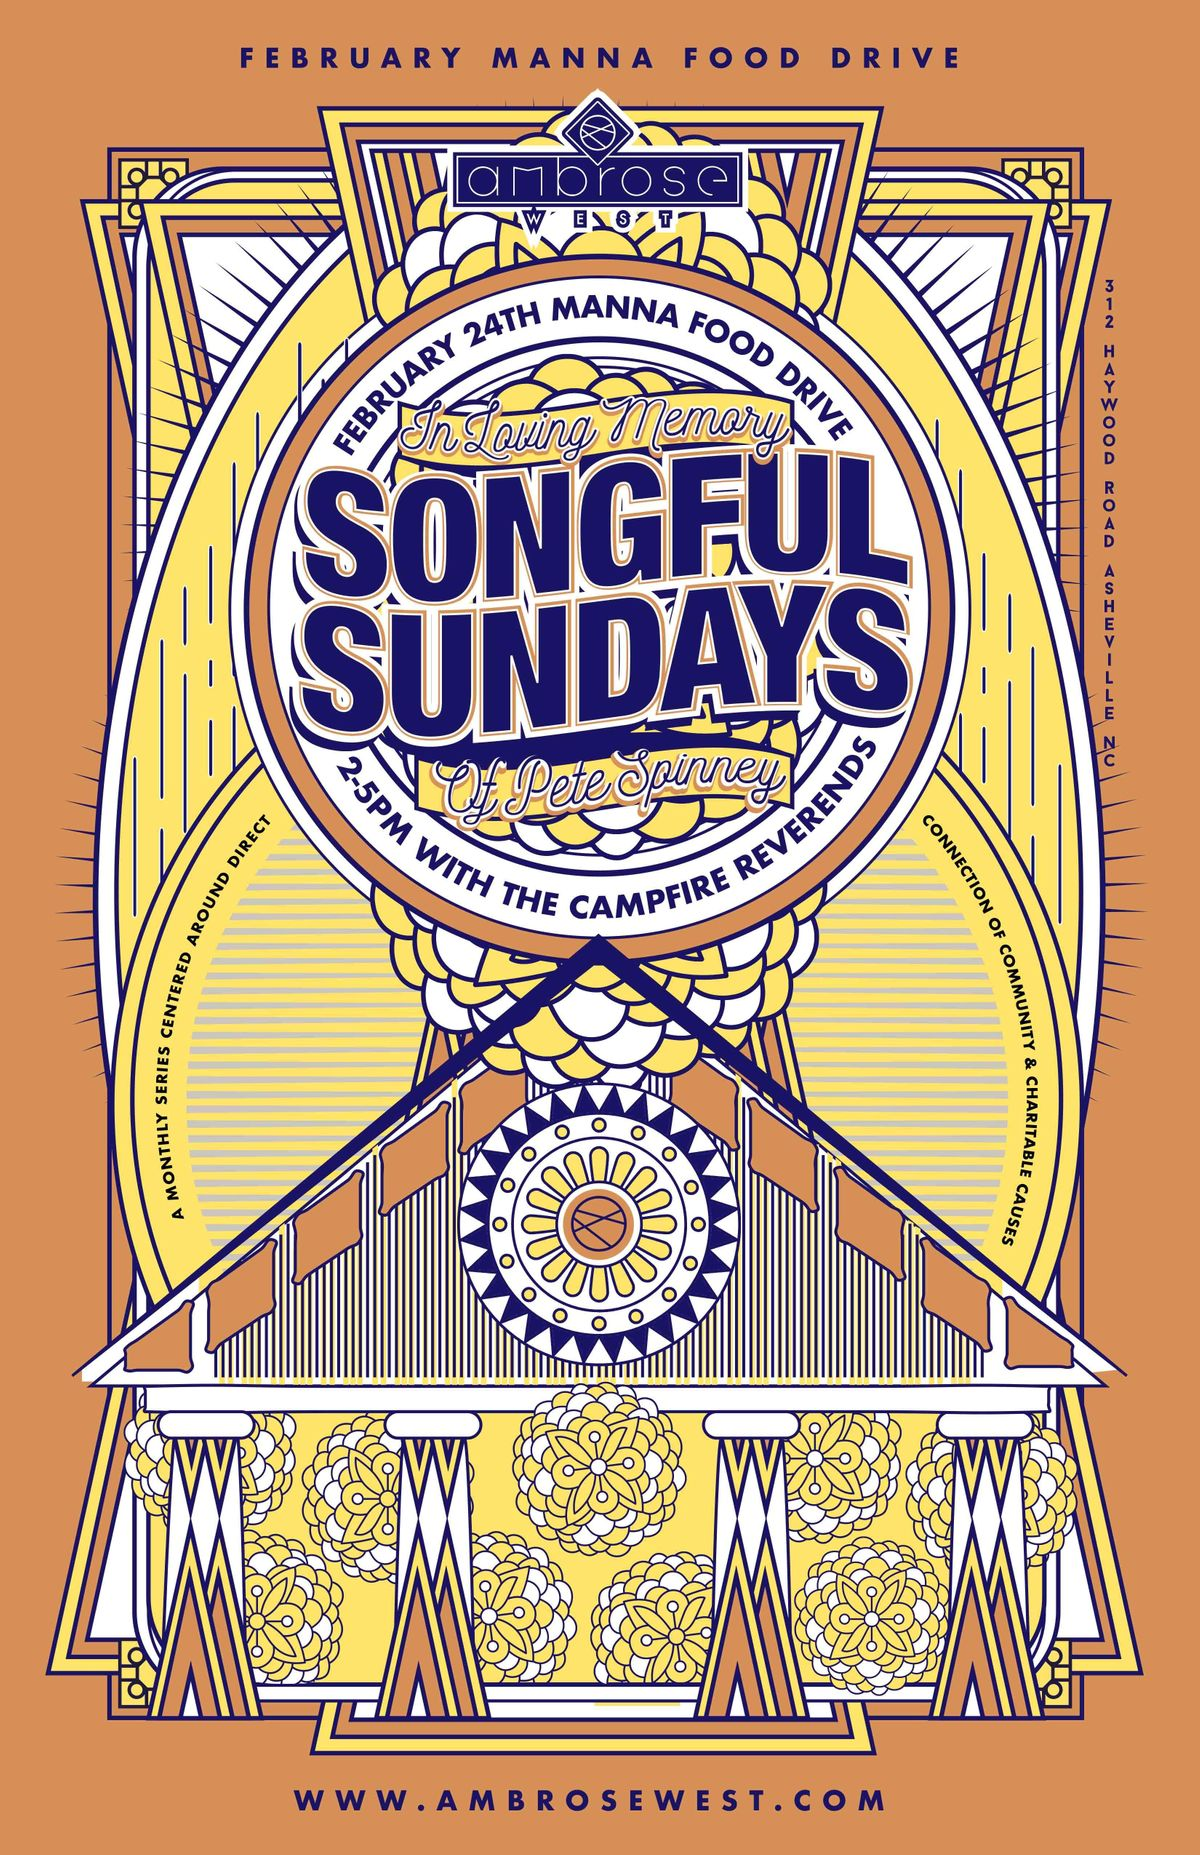 Songful Sundays with The Campfire Reverends